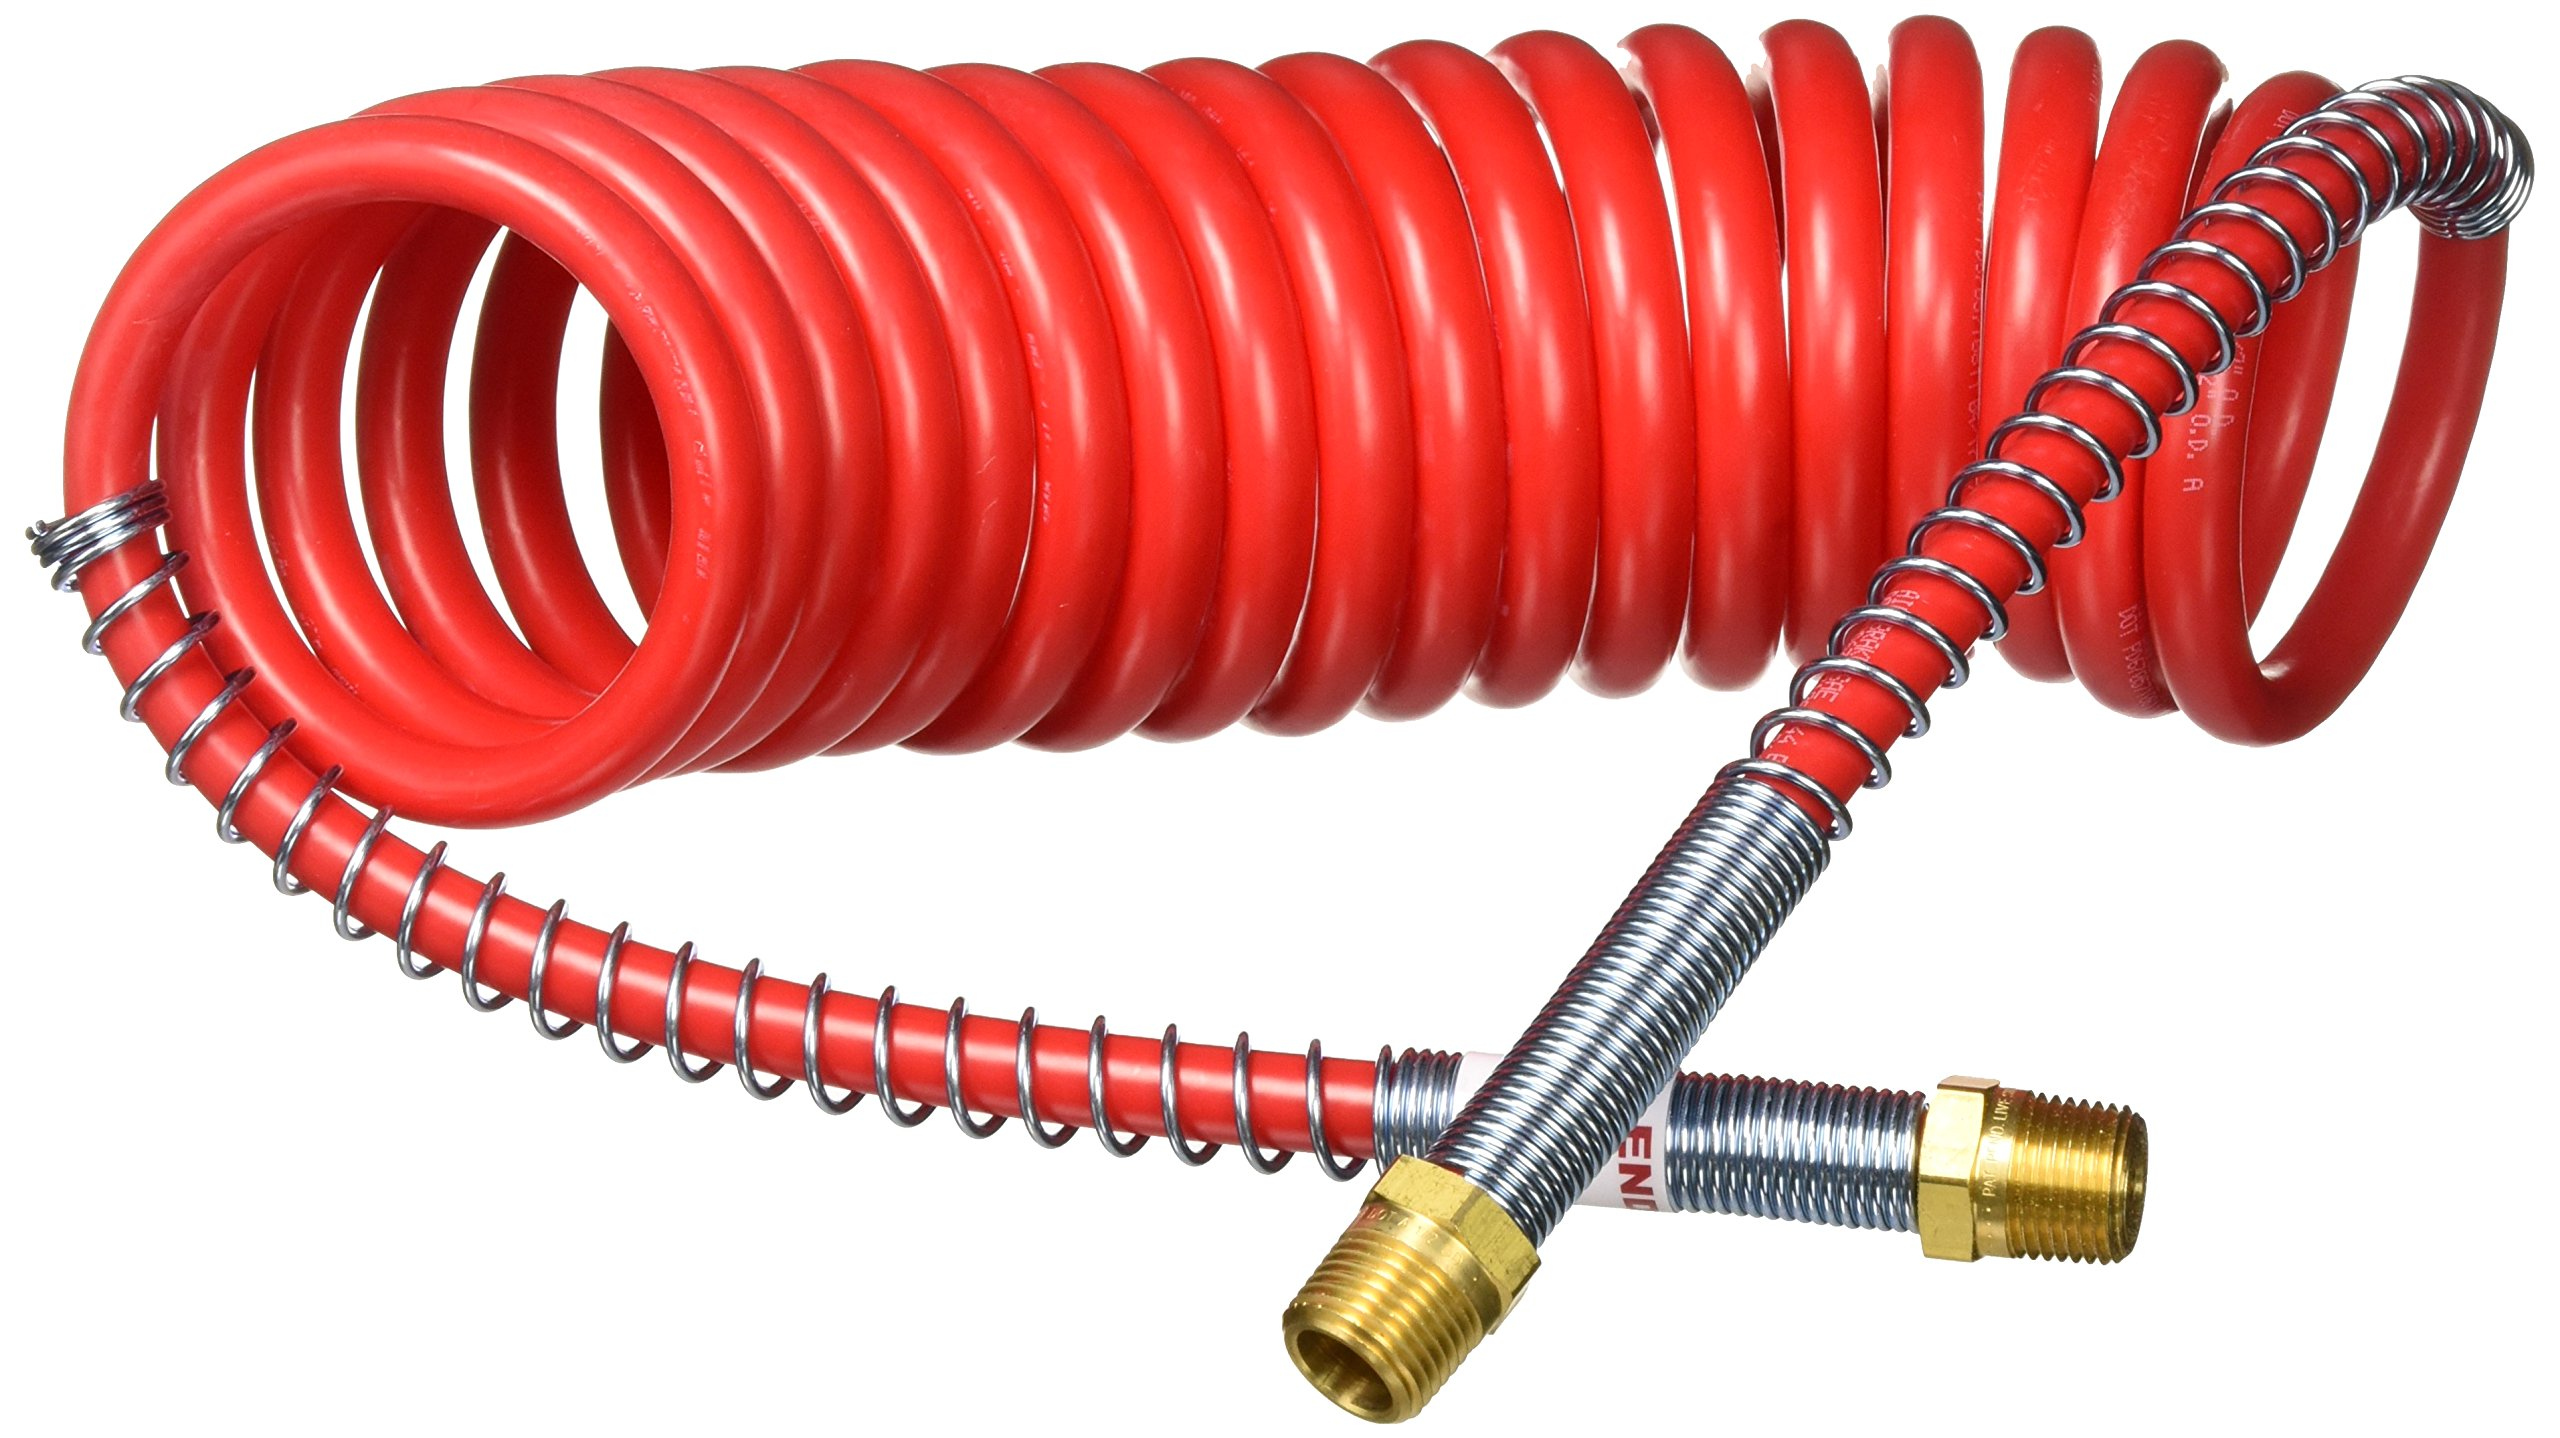 Tectran 16215R Industry Grade Aircoil, Red, 15' Tractor, 12'' Pigtail Length Trailer End